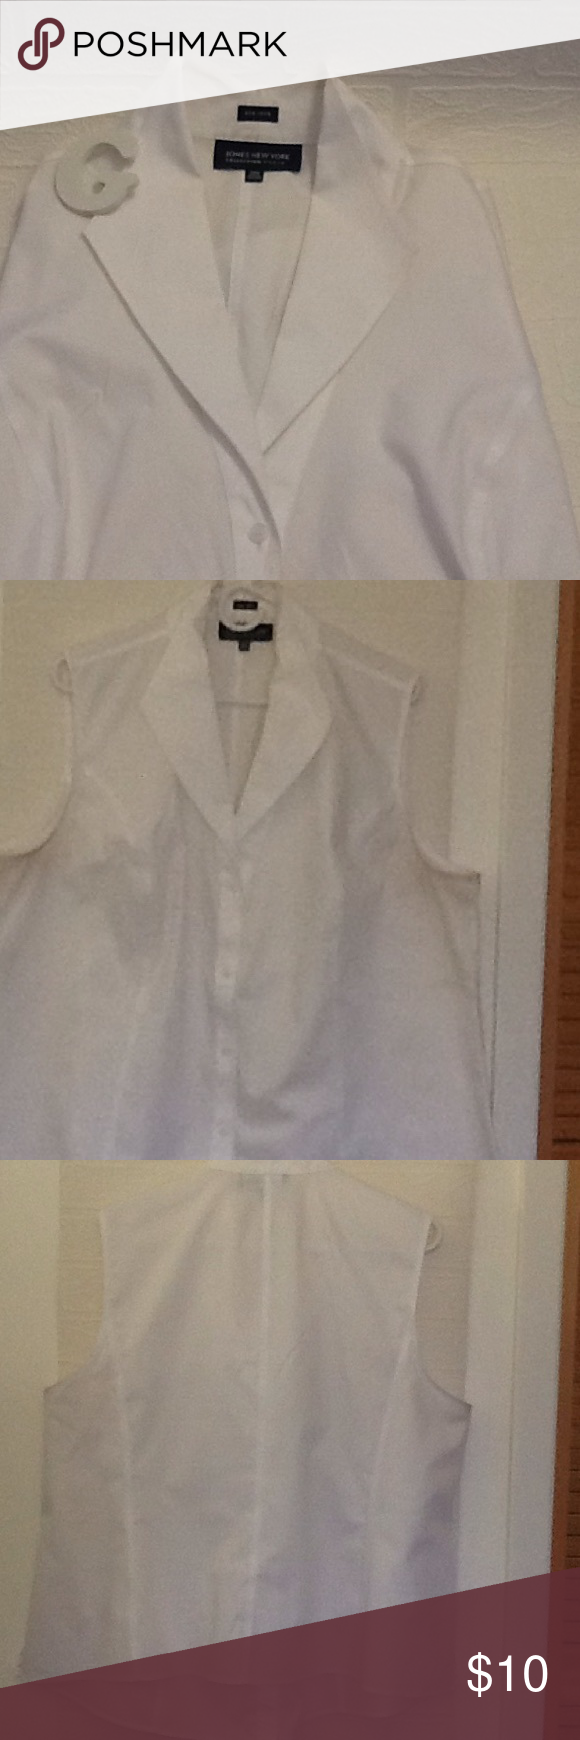 Used for work jones New York collection woman White button down sleeveless shirt, usage on neck, still has a lot of life. Jones New York Tops